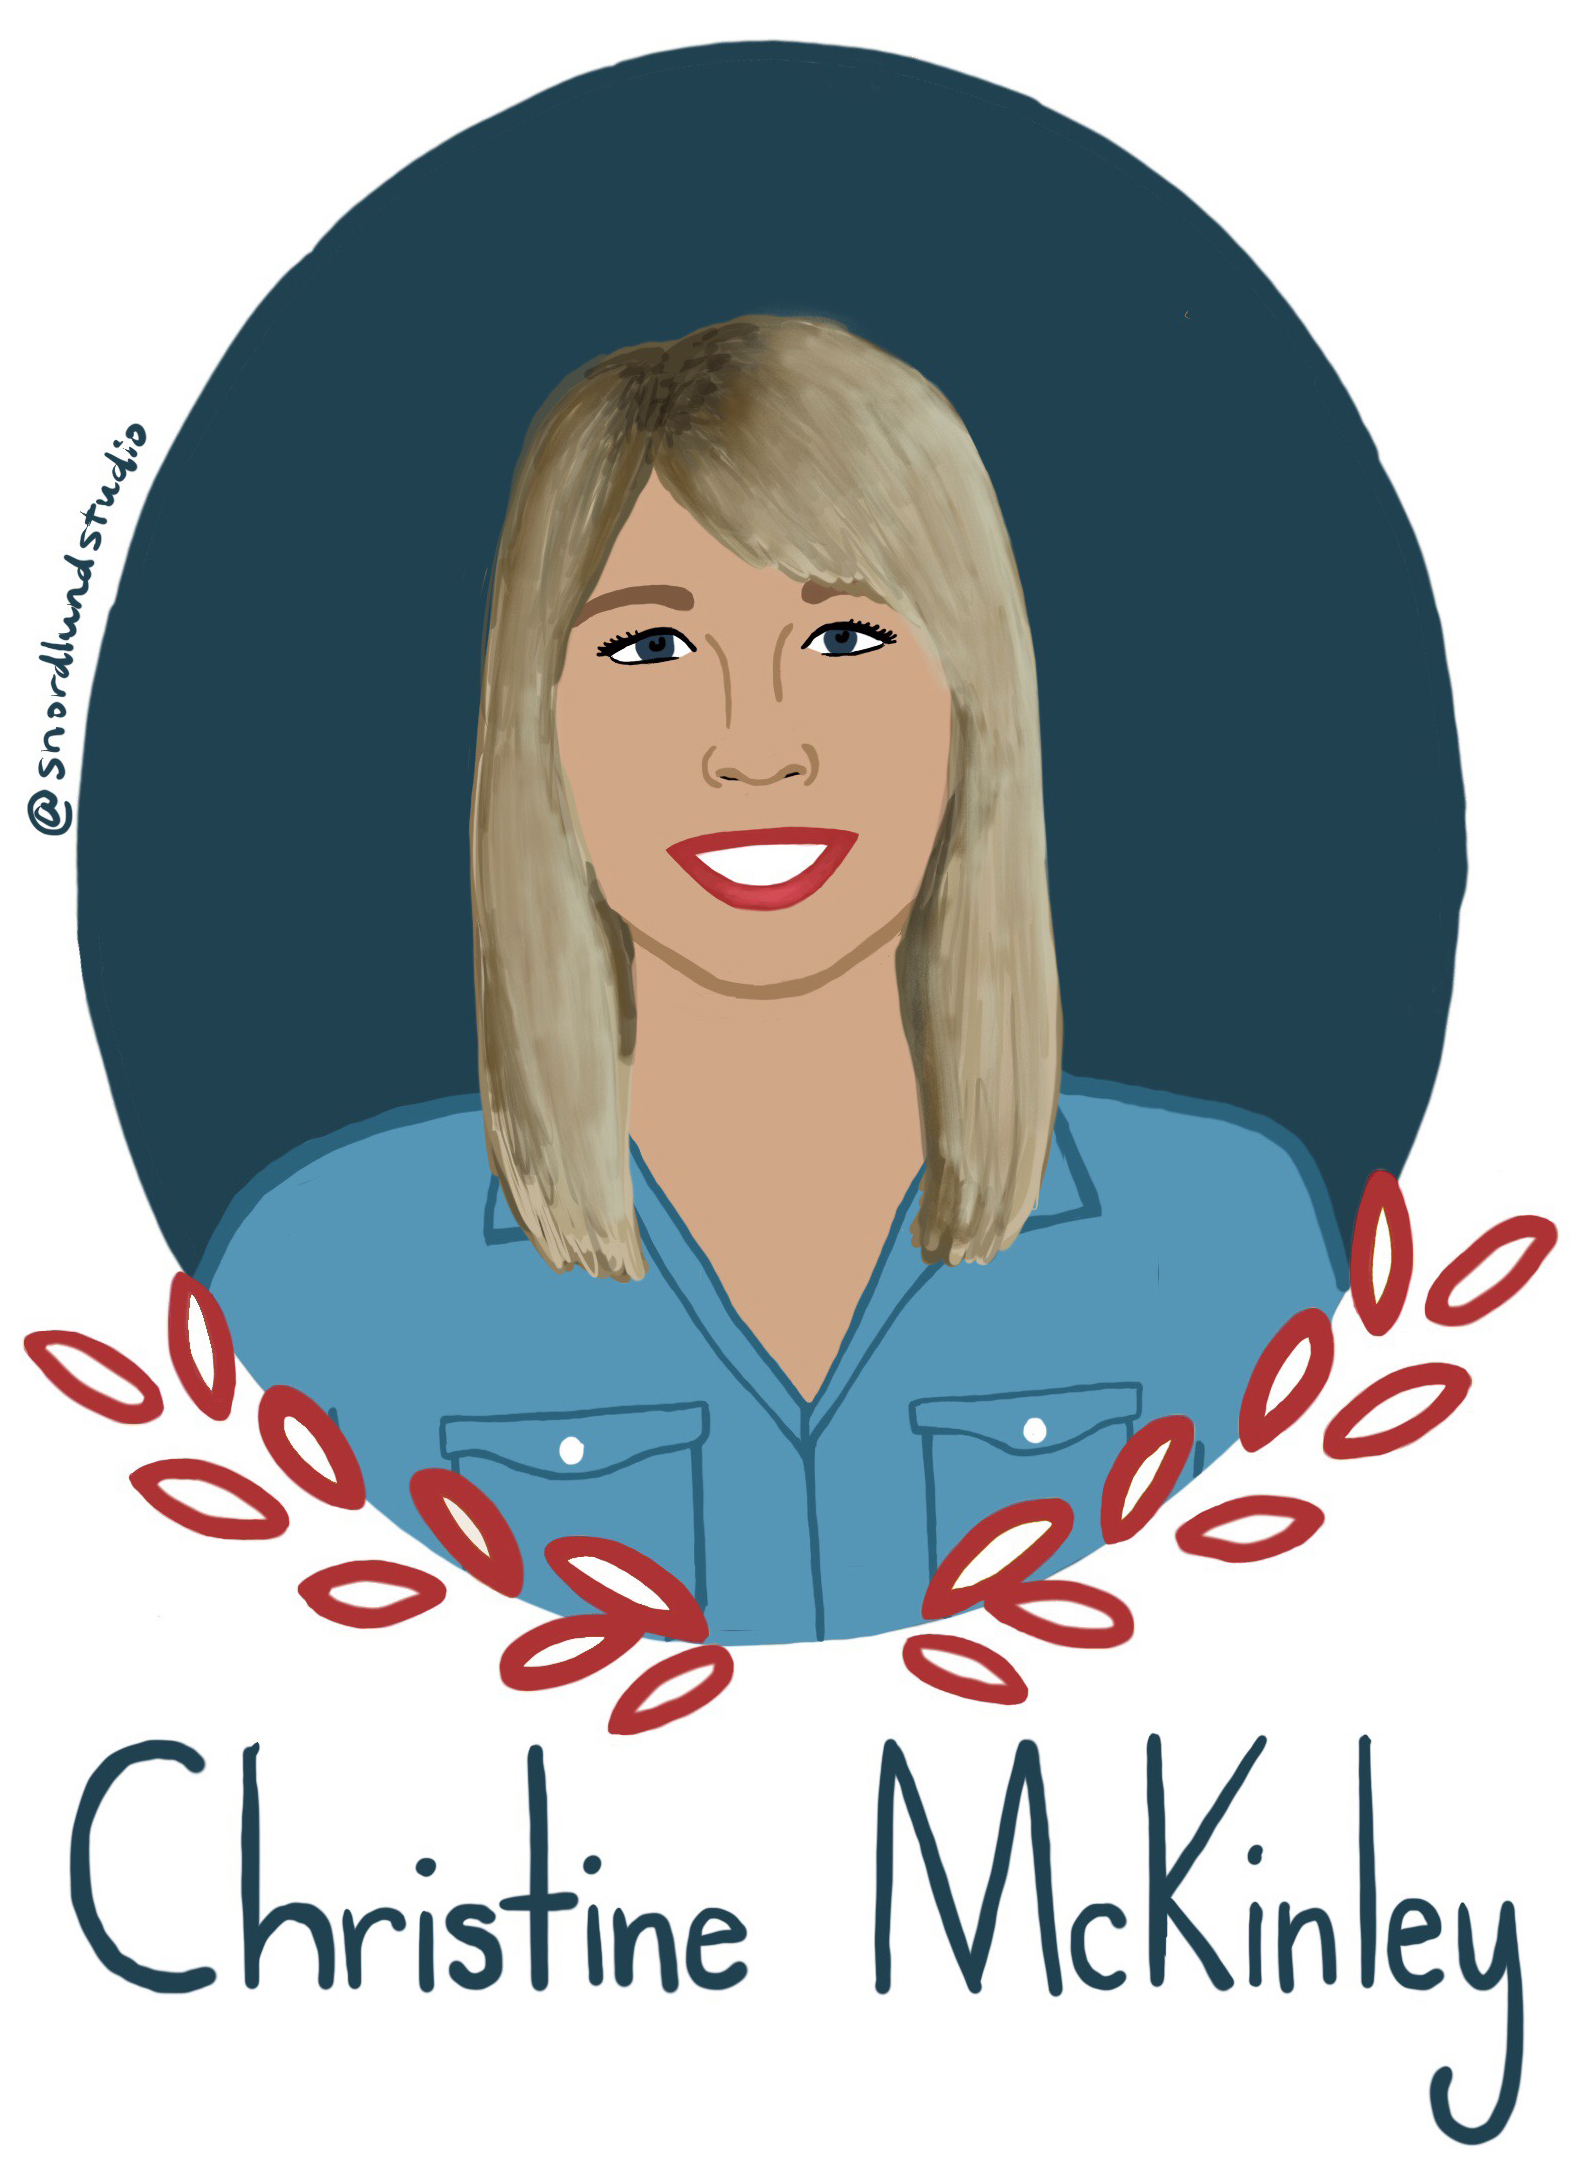 21. Christine McKinley - Christine McKinley is an engineer, musician, and author.